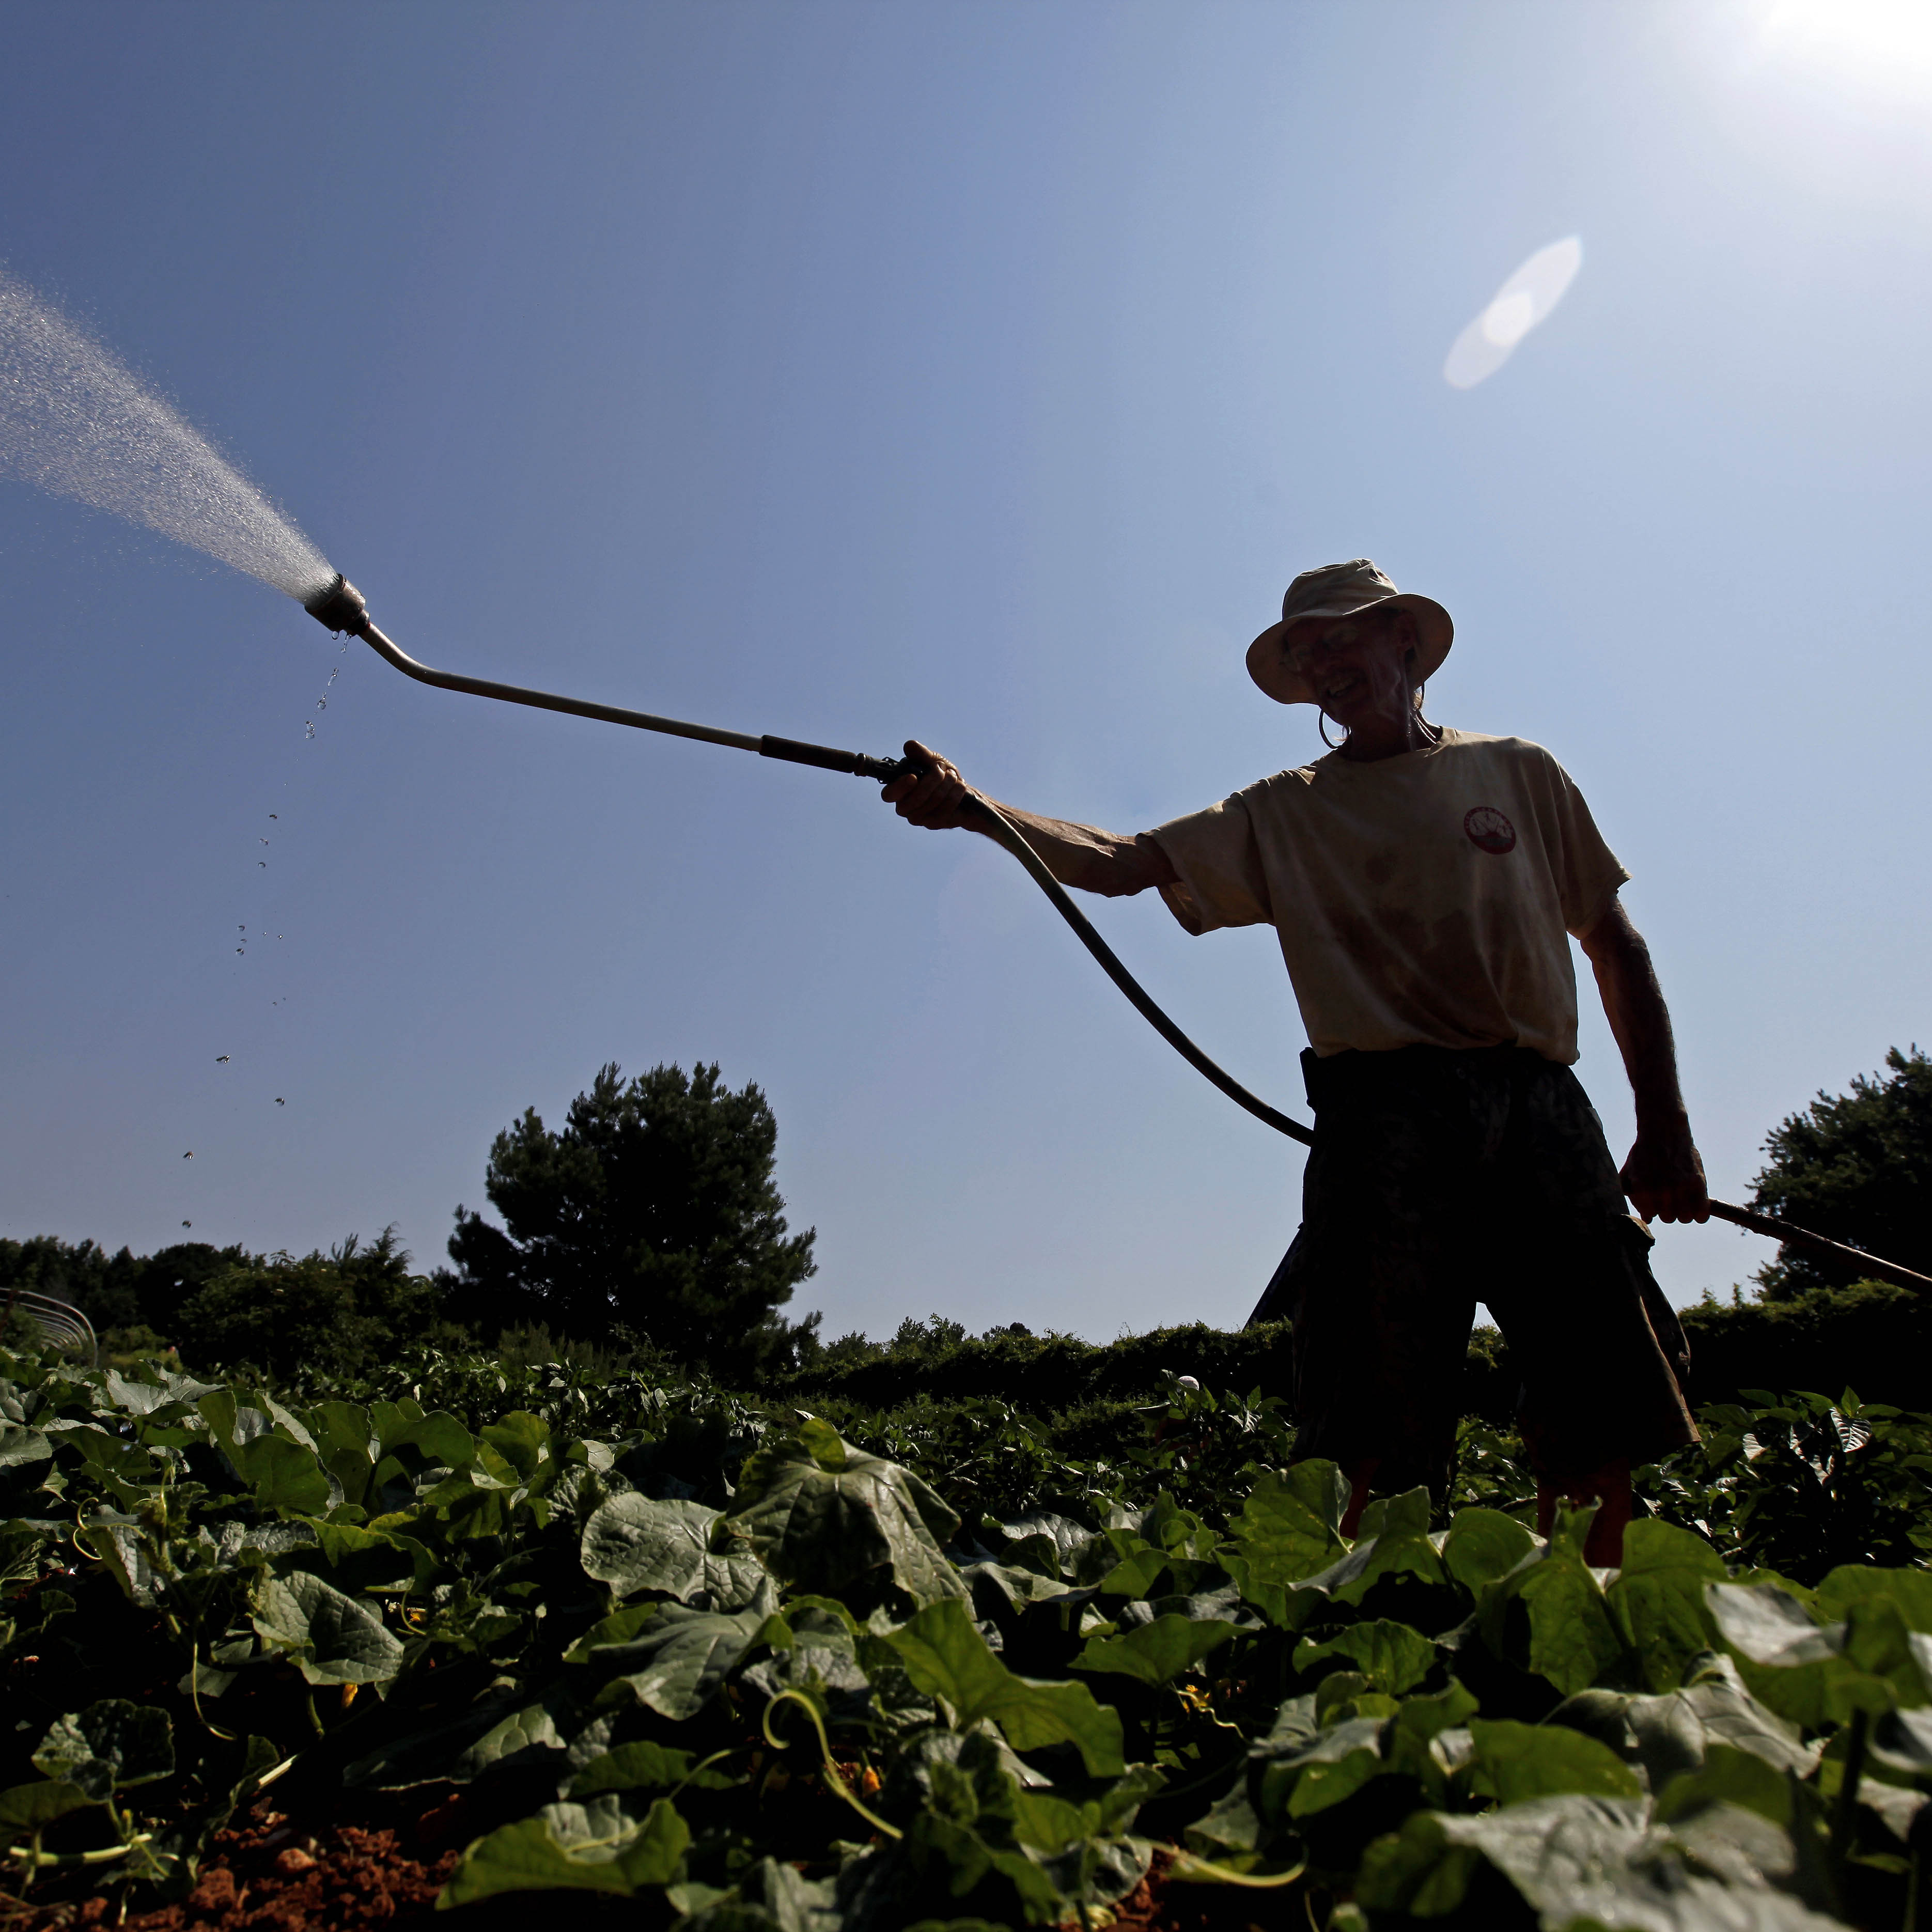 Doug Jones, owner of Piedmont Biofarm in Pittsboro, N.C., waters vegetables as temperatures in the South soar, Friday, June 29. Triple-digit temperatures are expected for several days in North Carolina.